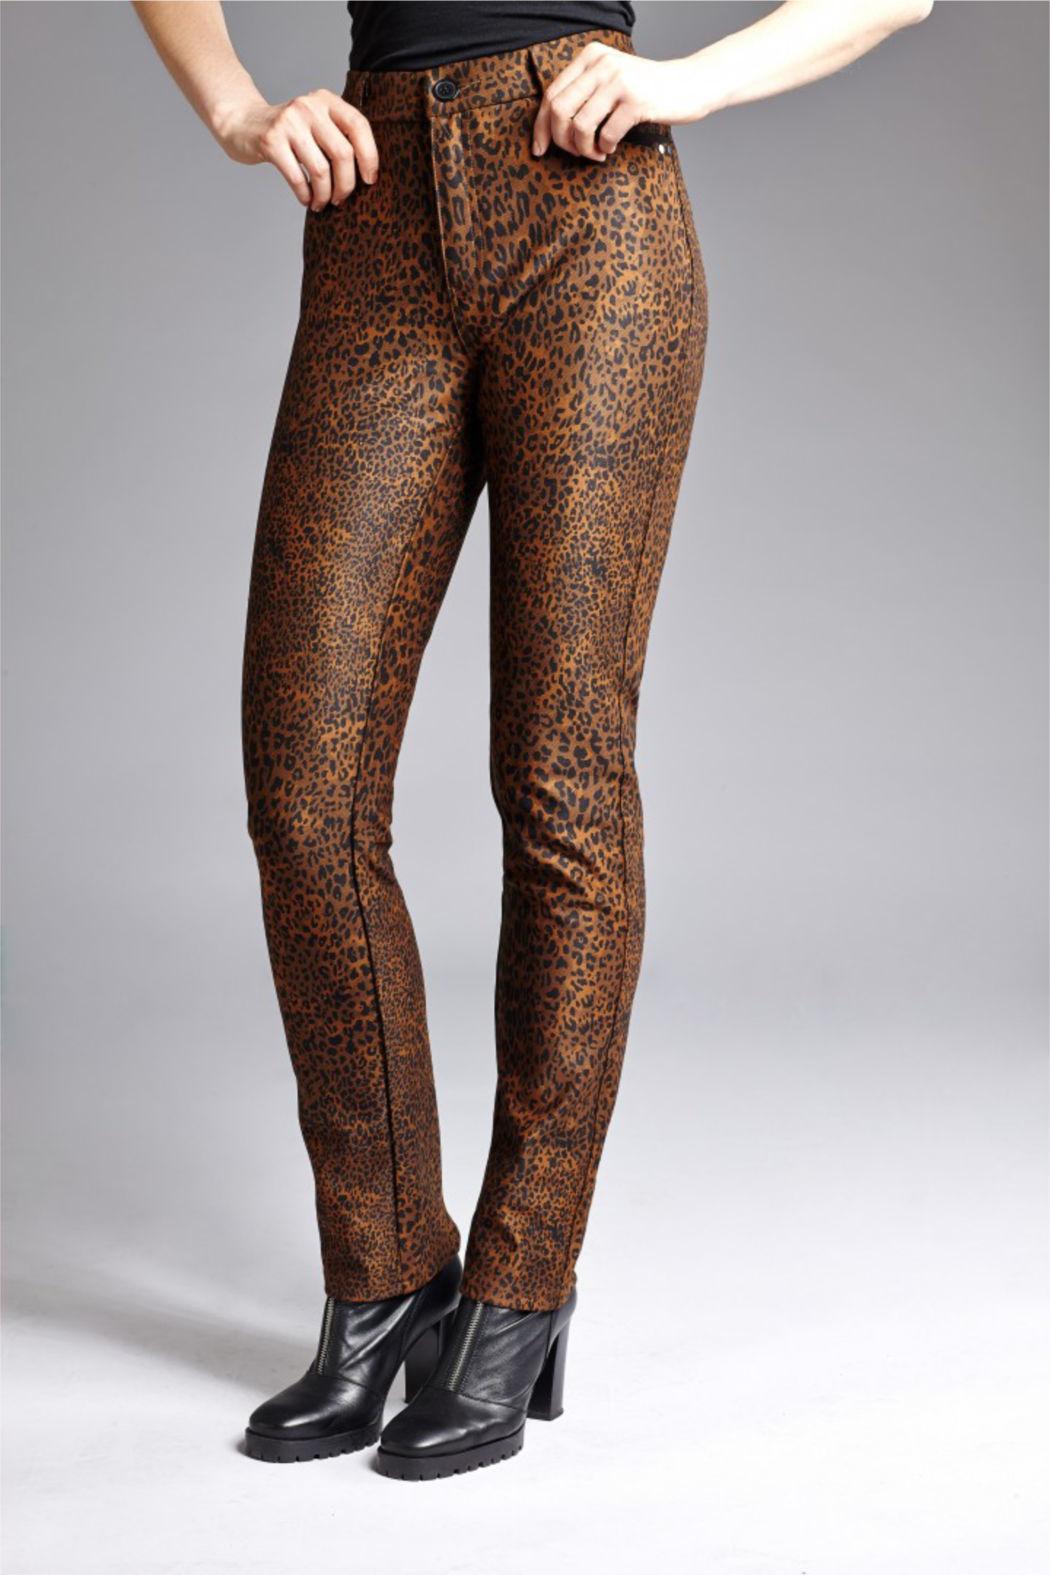 INSIGHT NYC Leopard Scuba Jean Pants - Front Cropped Image